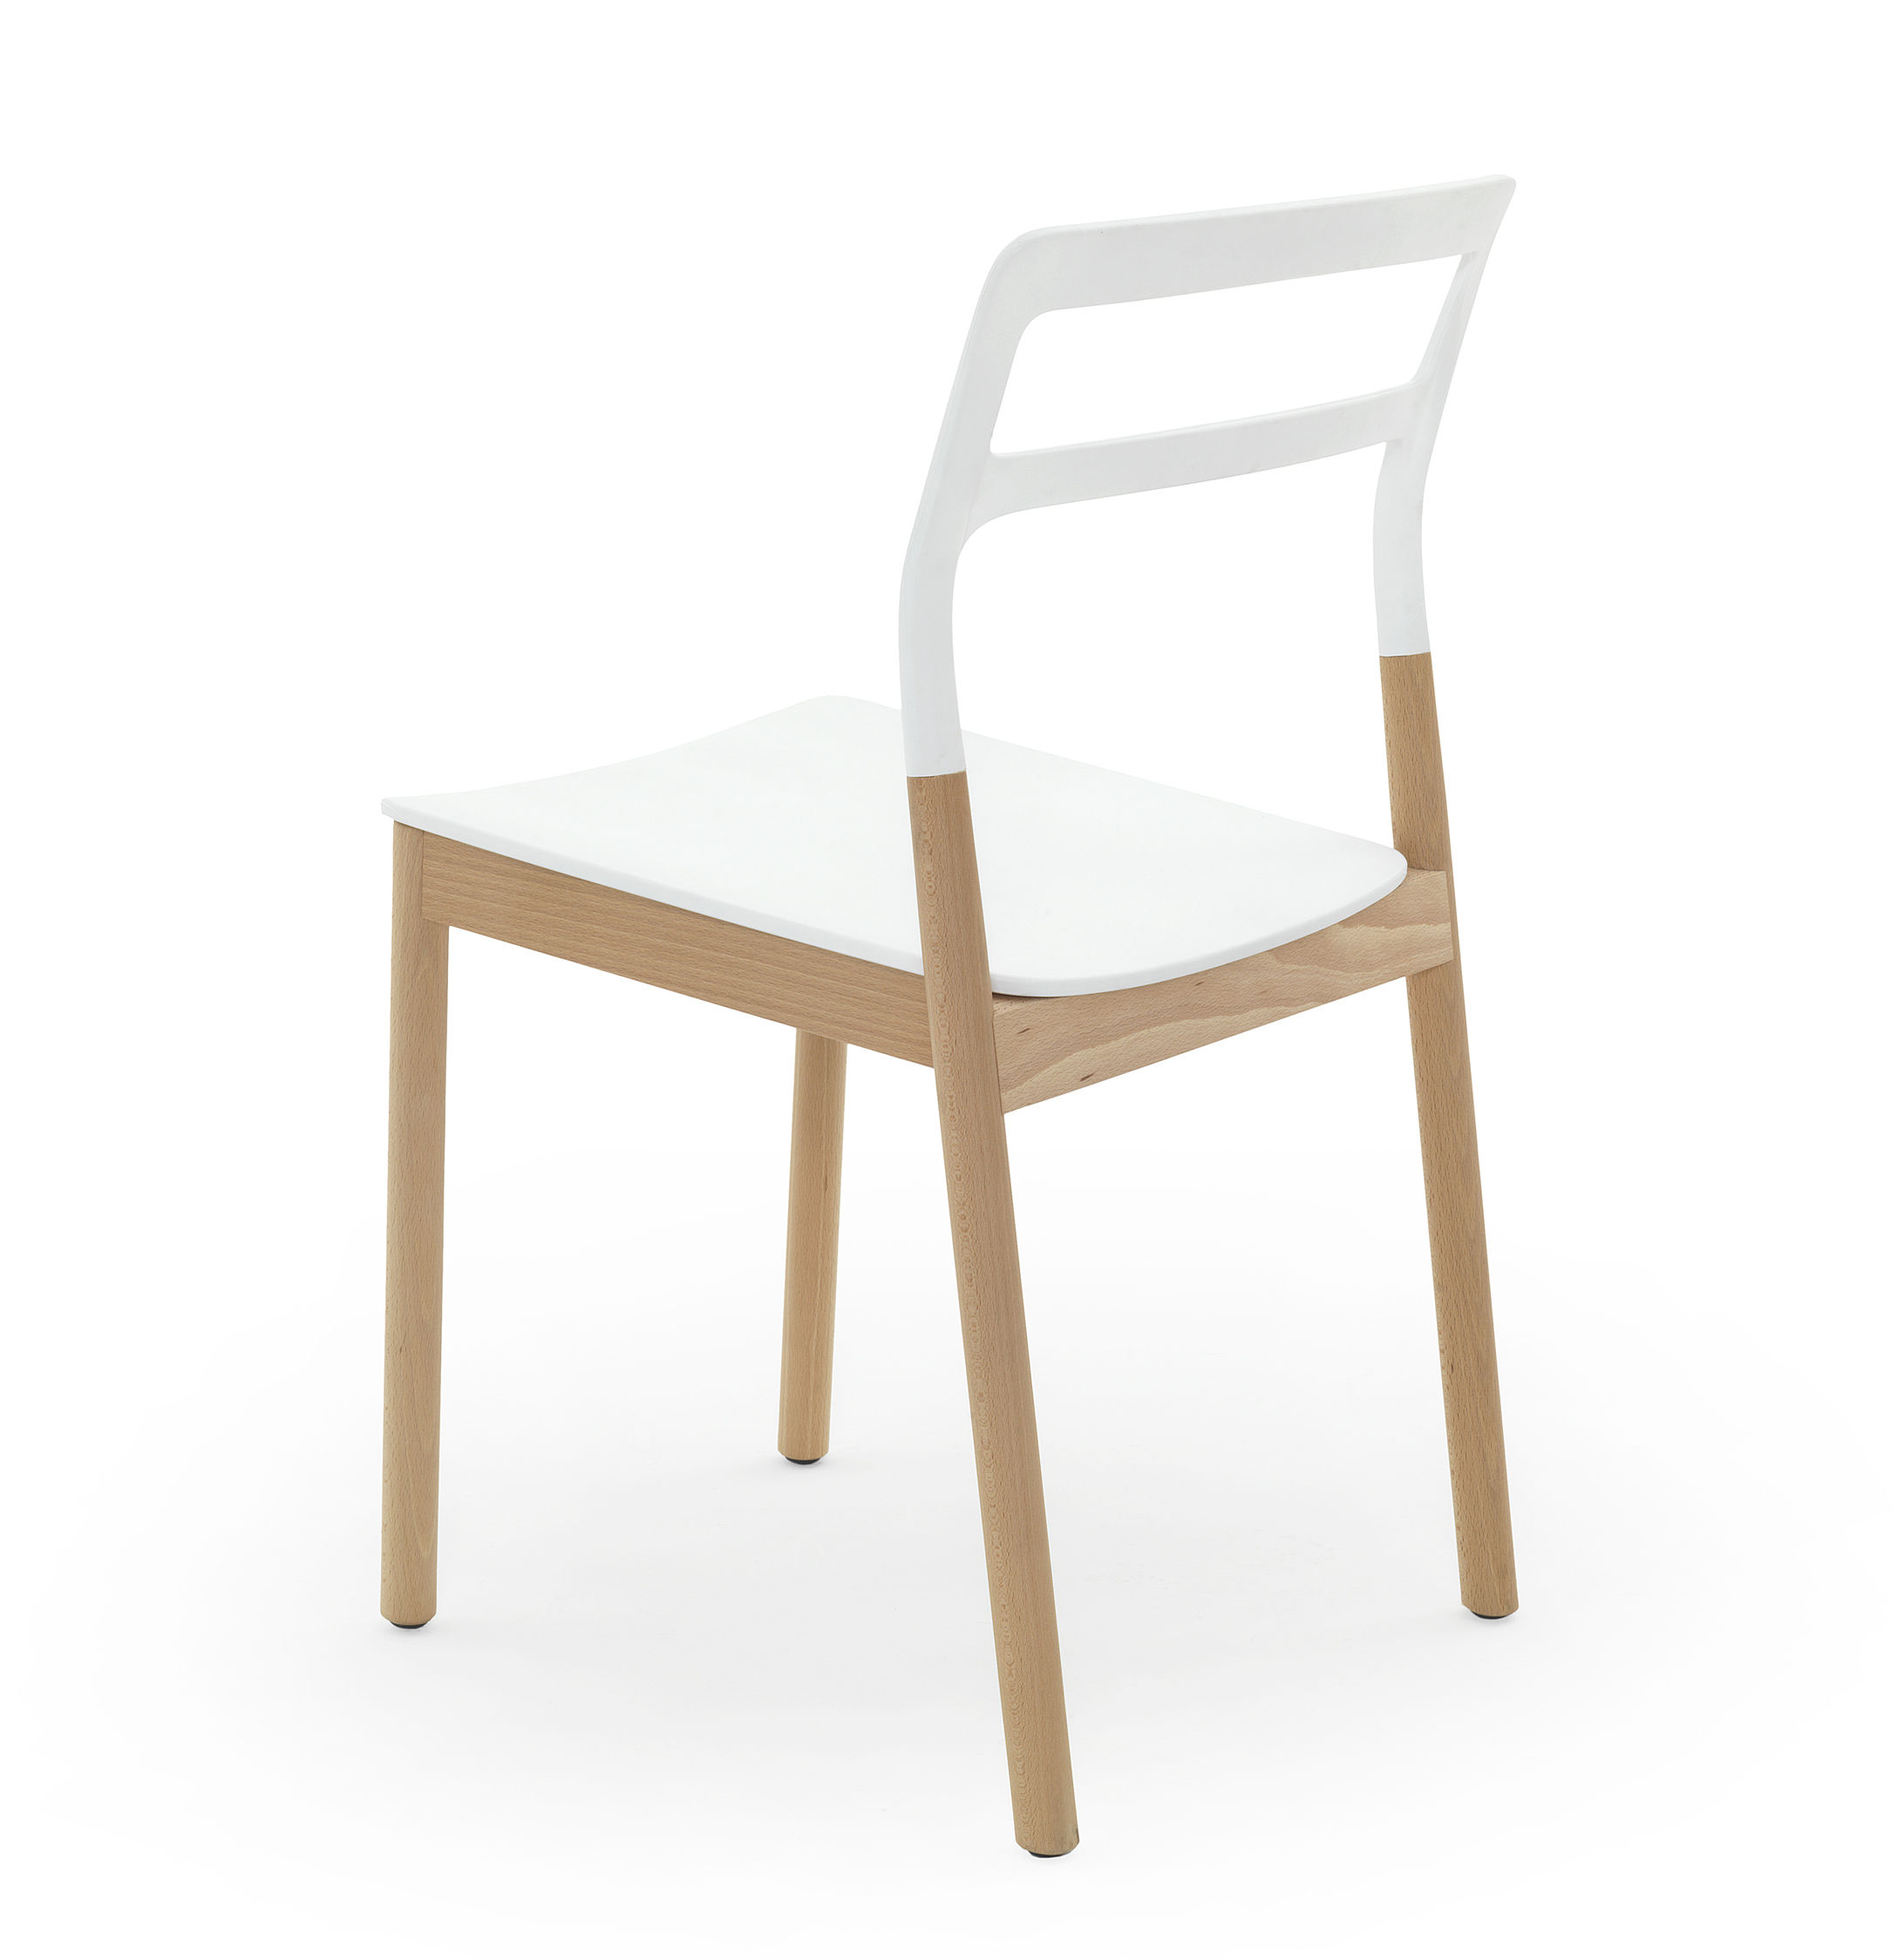 white stacking chairs plastic seated chair exercises for obese florinda wood and by de